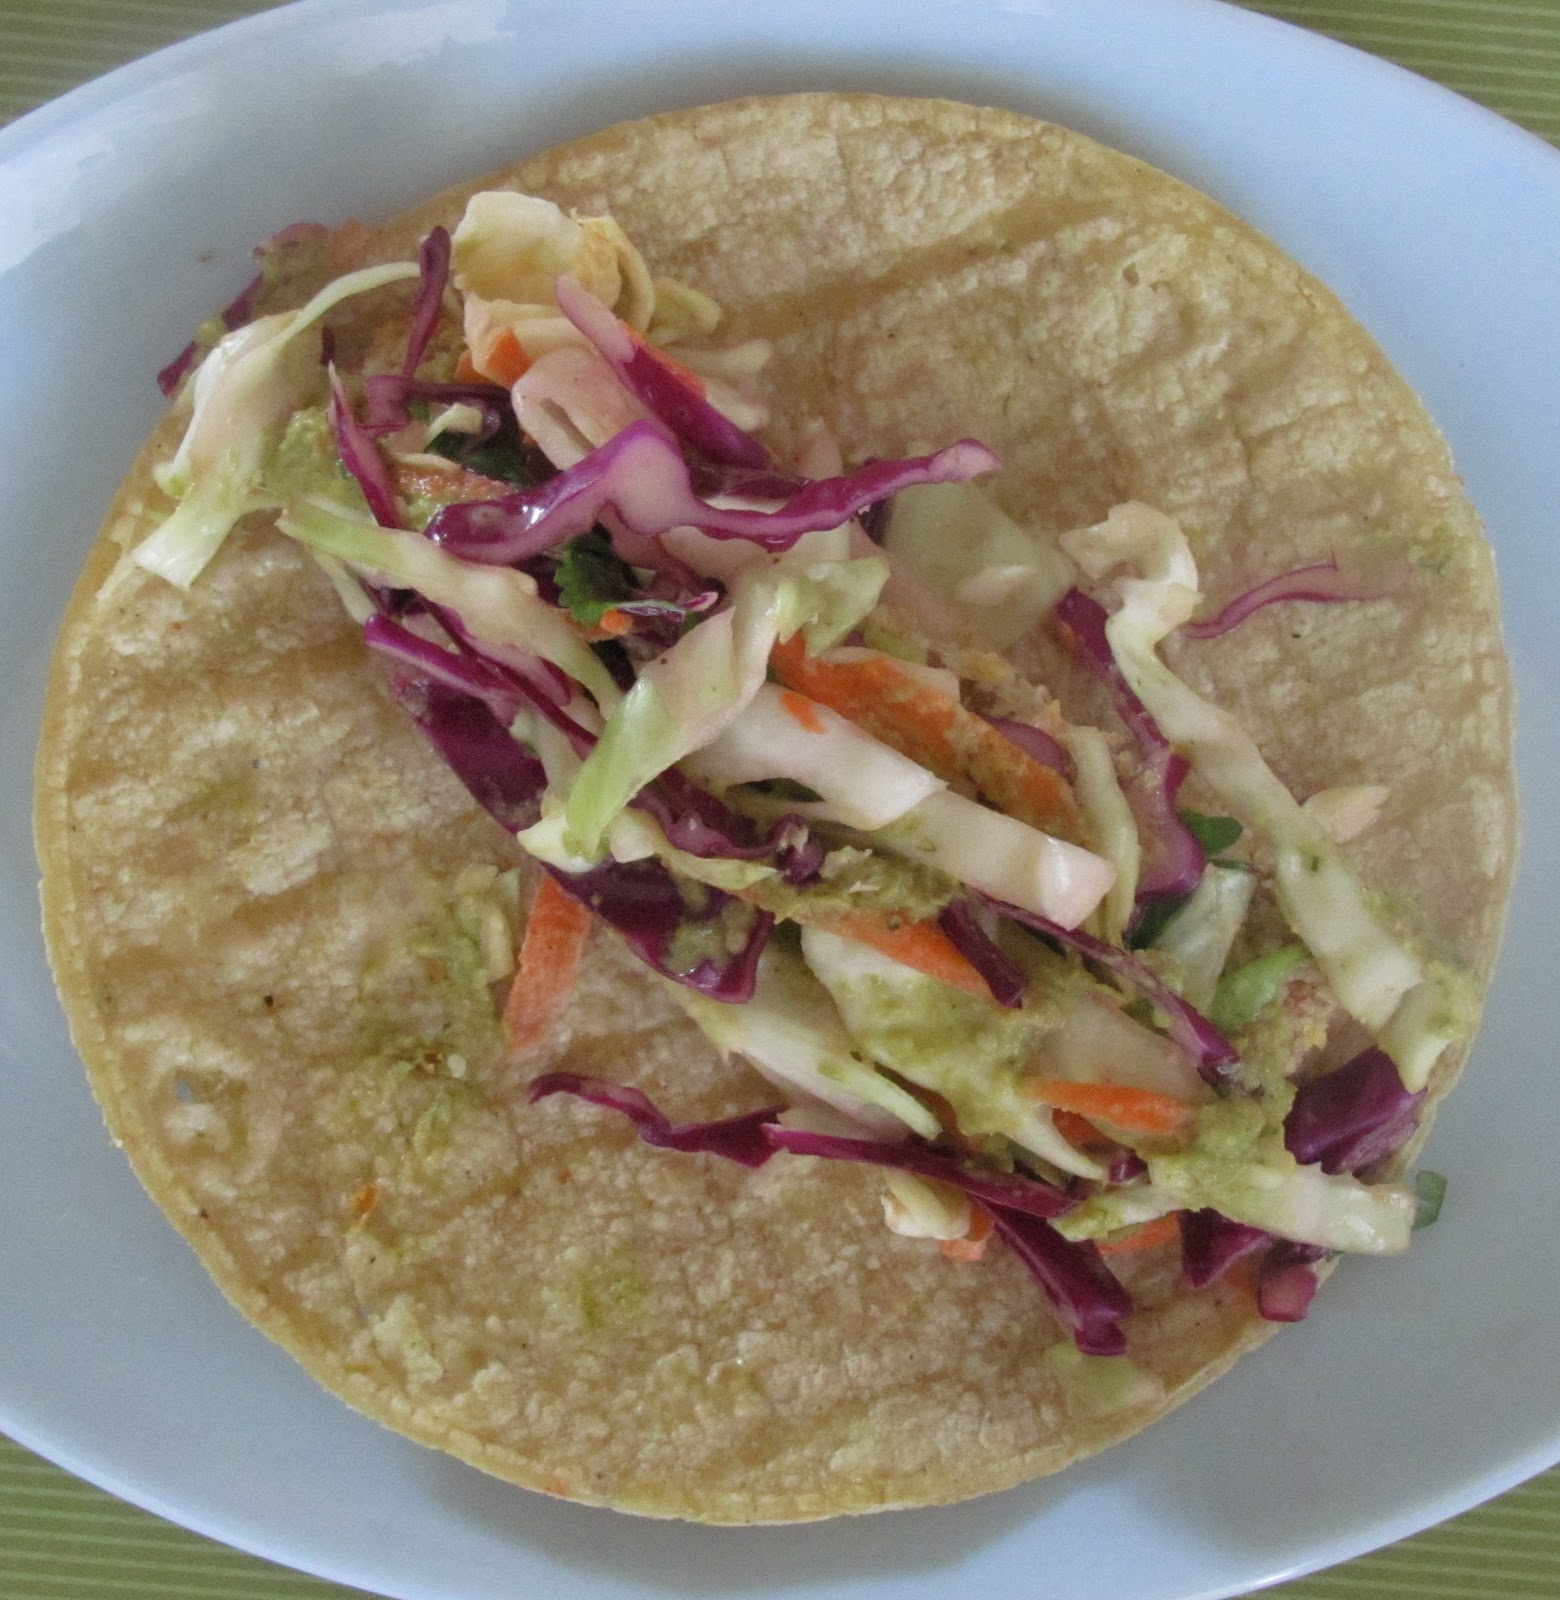 Crispy fish tacos with cabbage slaw for Cabbage slaw for fish tacos